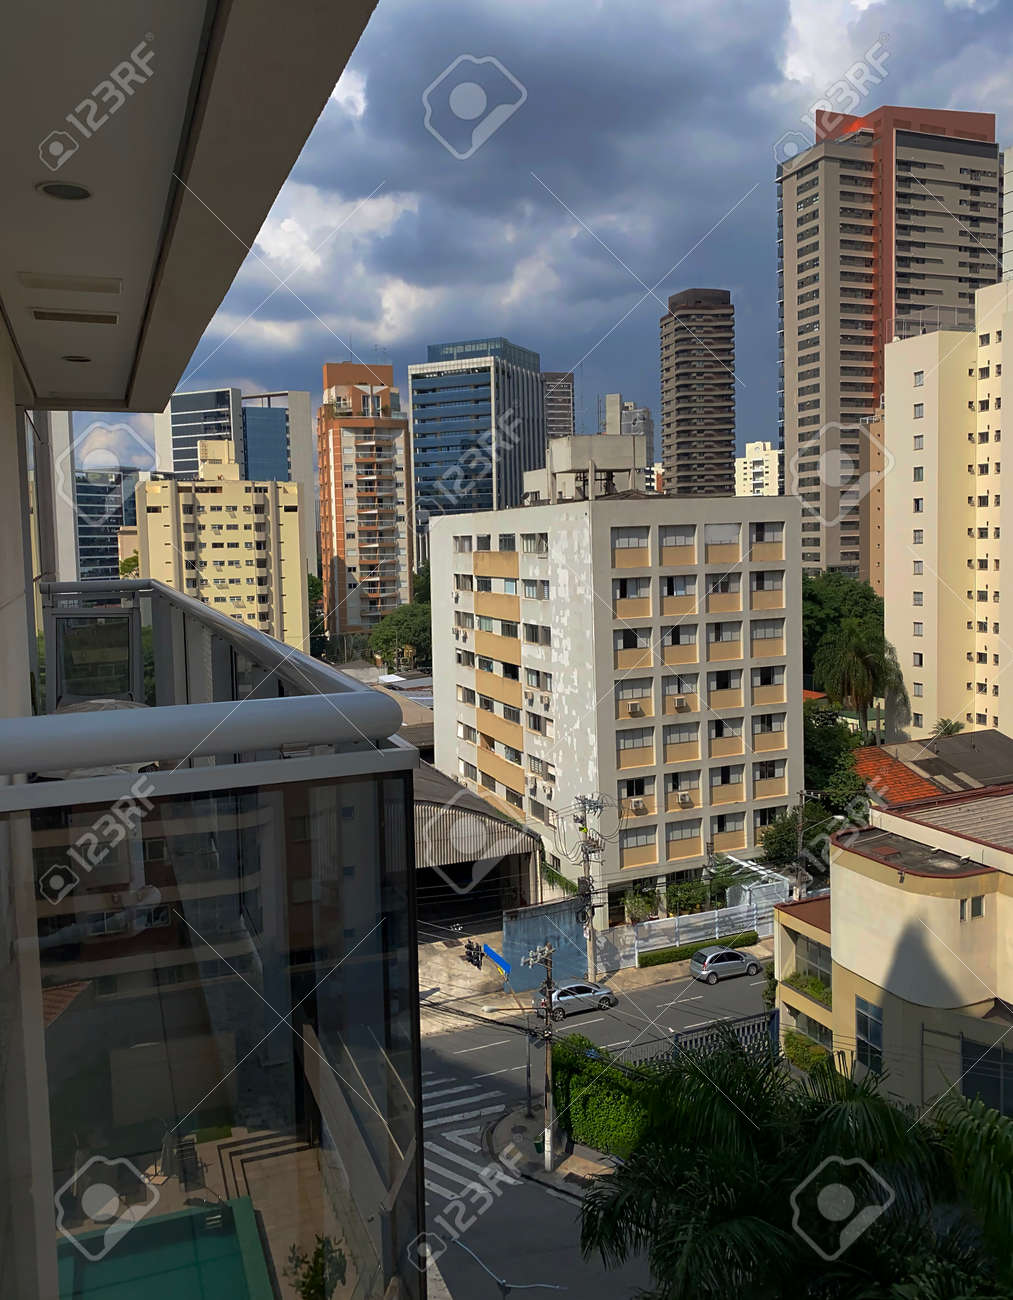 Building constructions in South America. Several different buildings. Sao Paulo city, Brazil. - 167614256